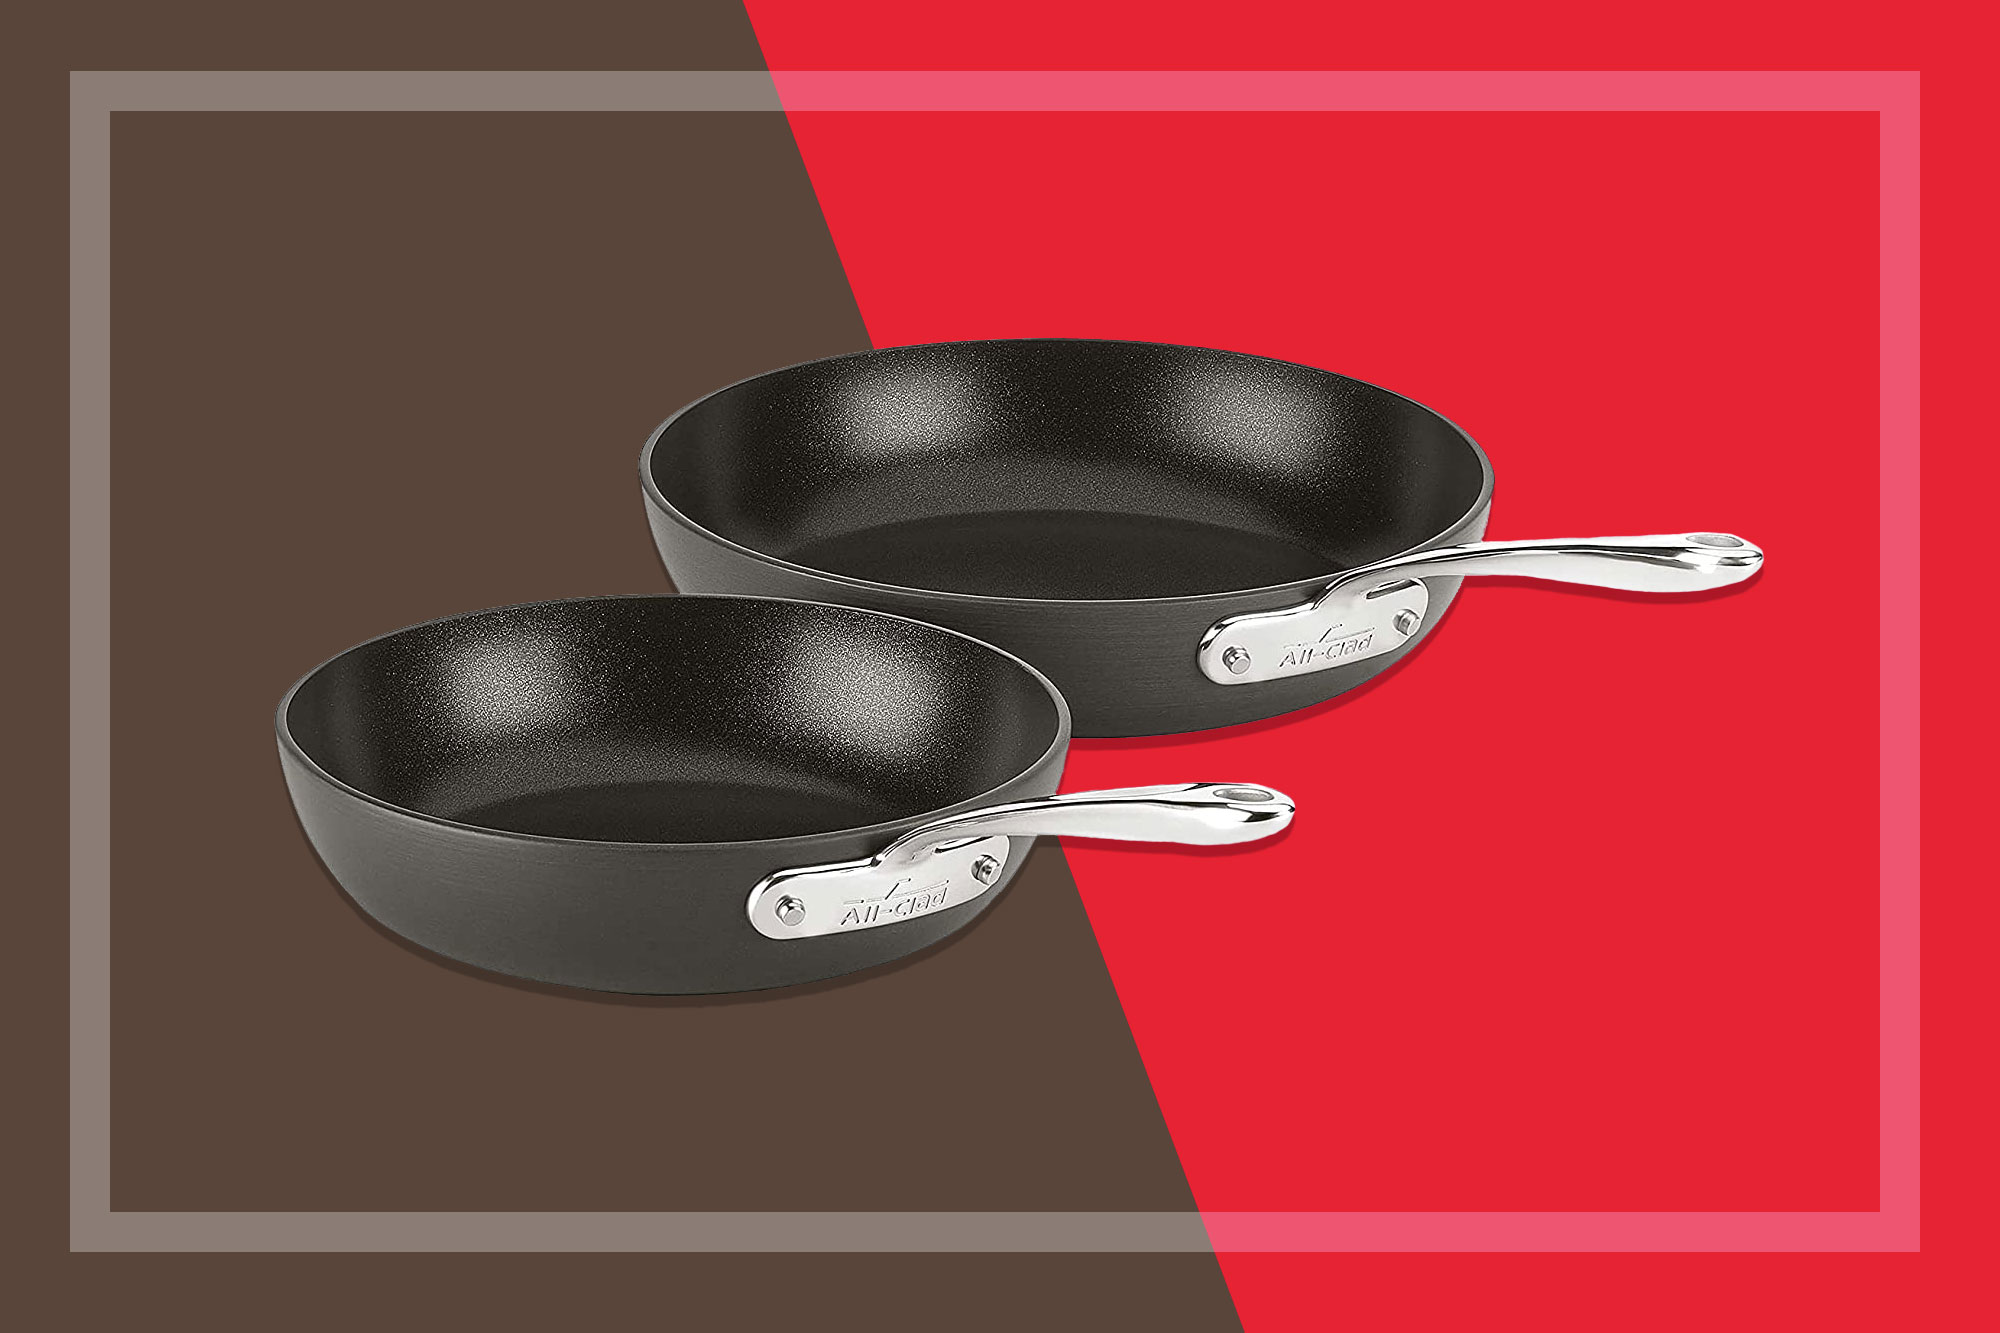 All-Clad Essentials Nonstick Hard Anodized Fry Pans